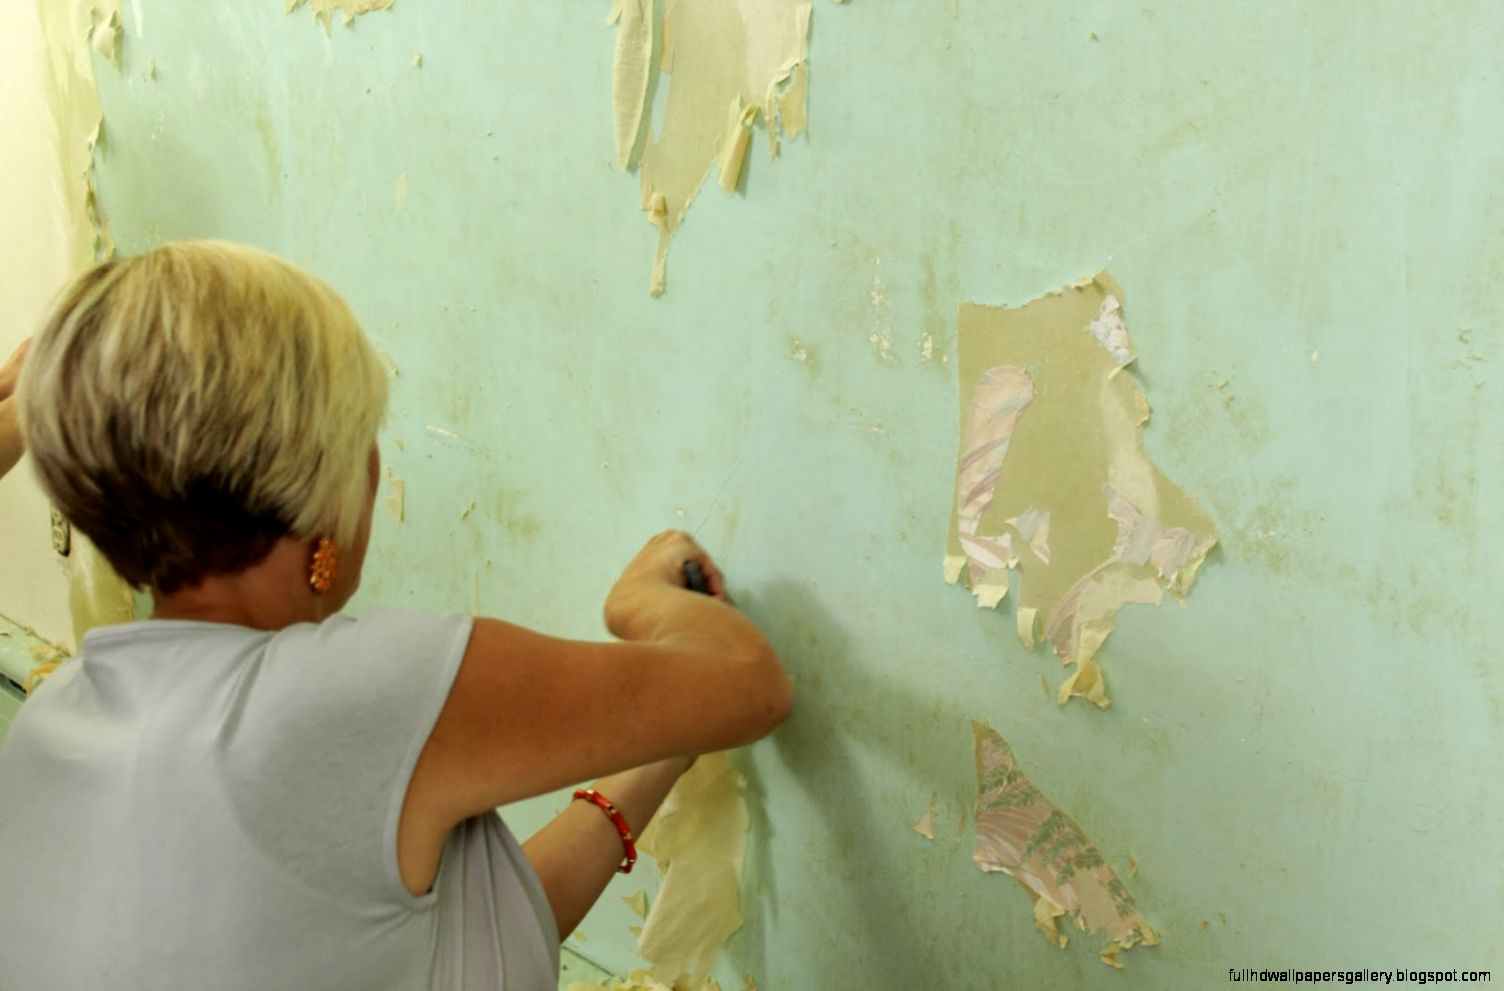 How to remove wallpaper paste from sheetrock - View Original Size Beautiful Removing Wall Paper With How To Remove Wallpaper Paste